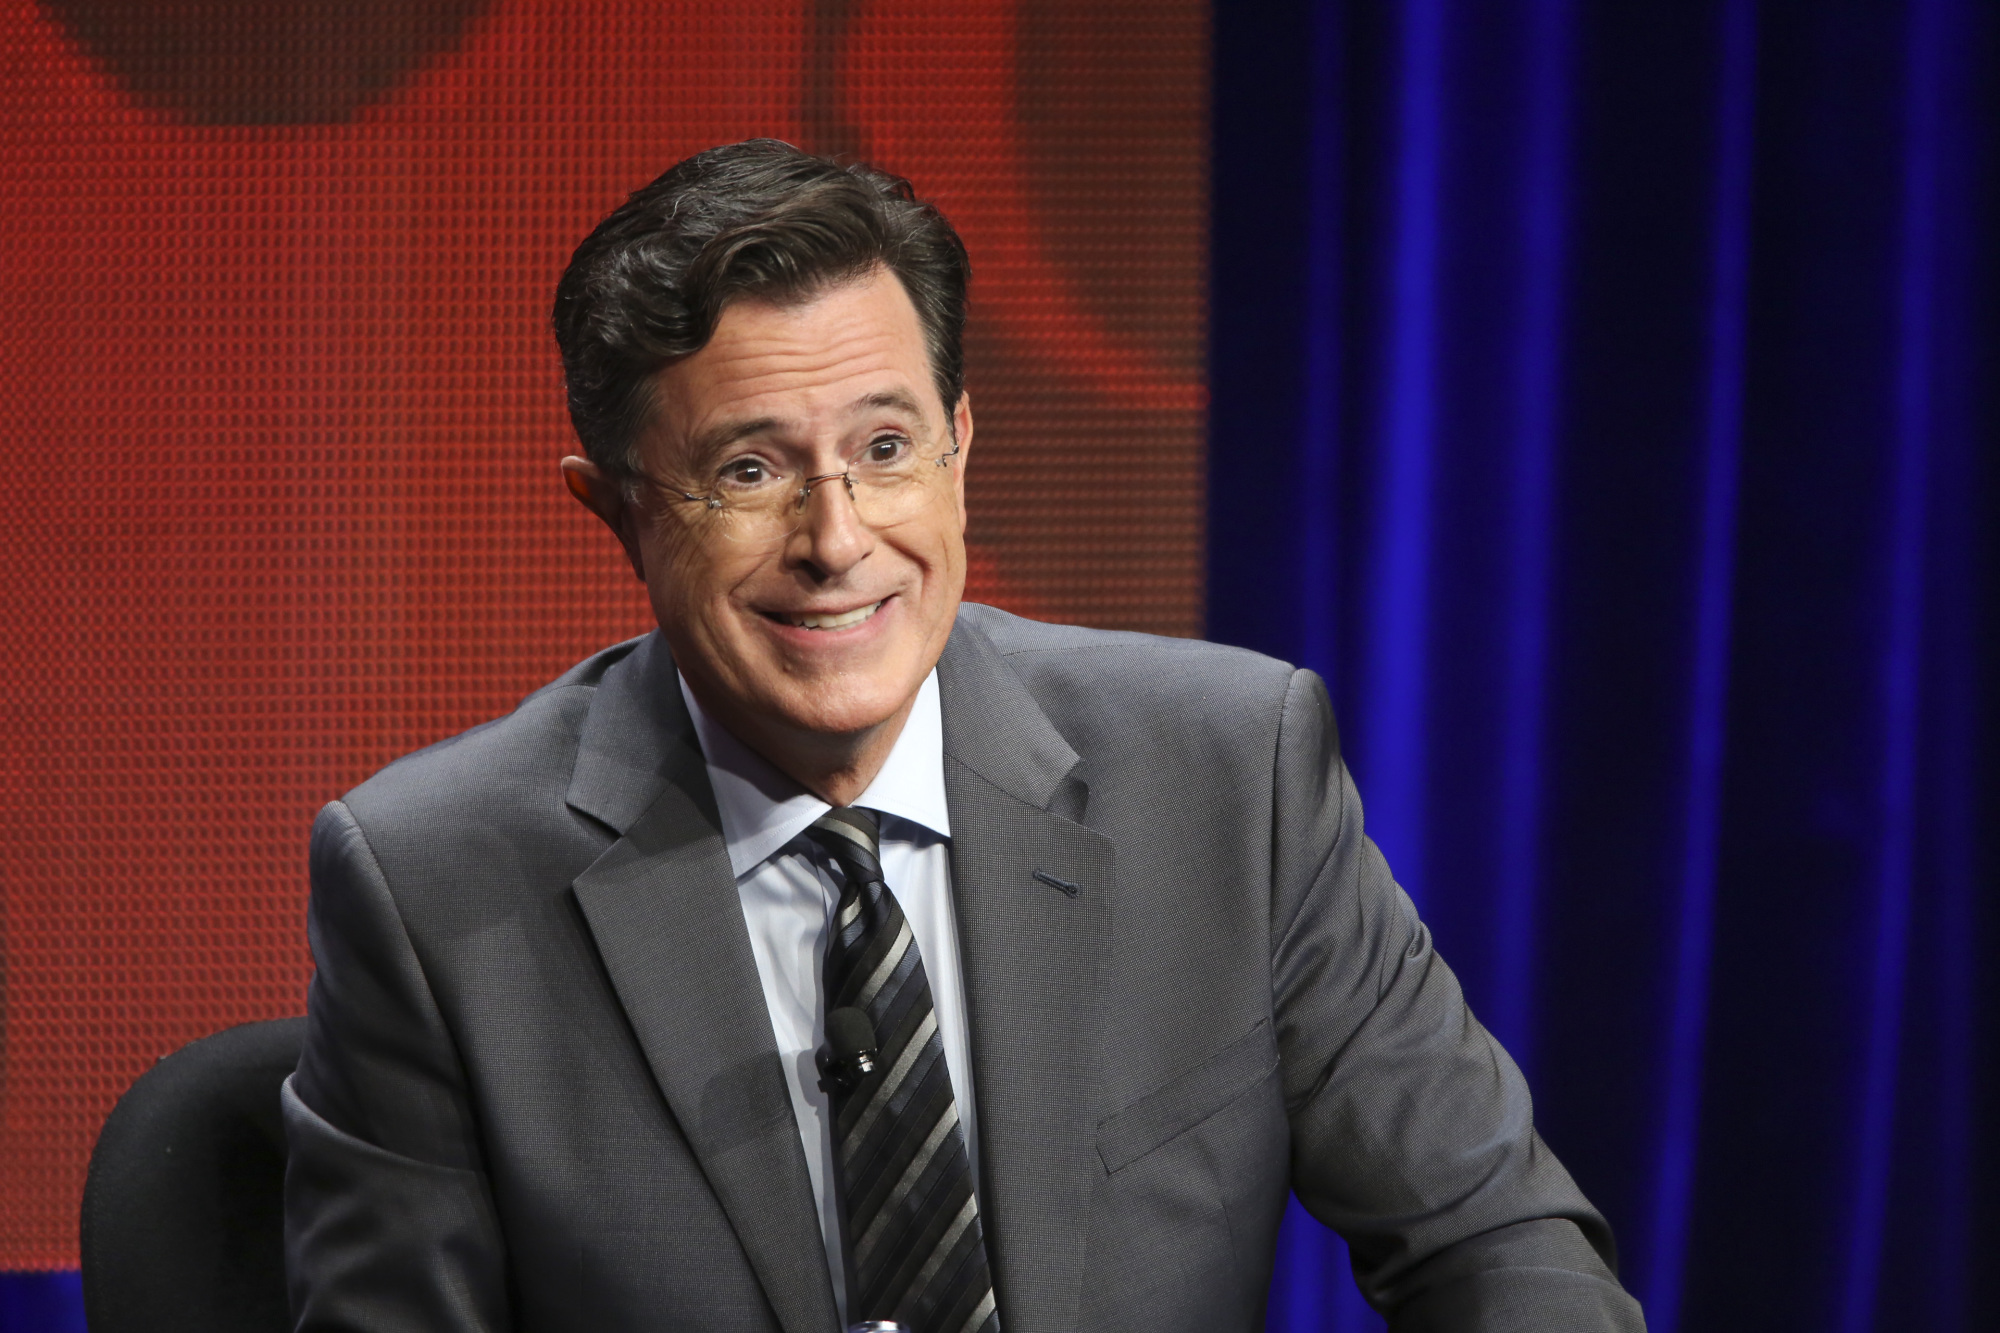 Stephen Colbert at the TCA Summer Press Tour 2015 in Los Angeles on Aug. 10, 2015.